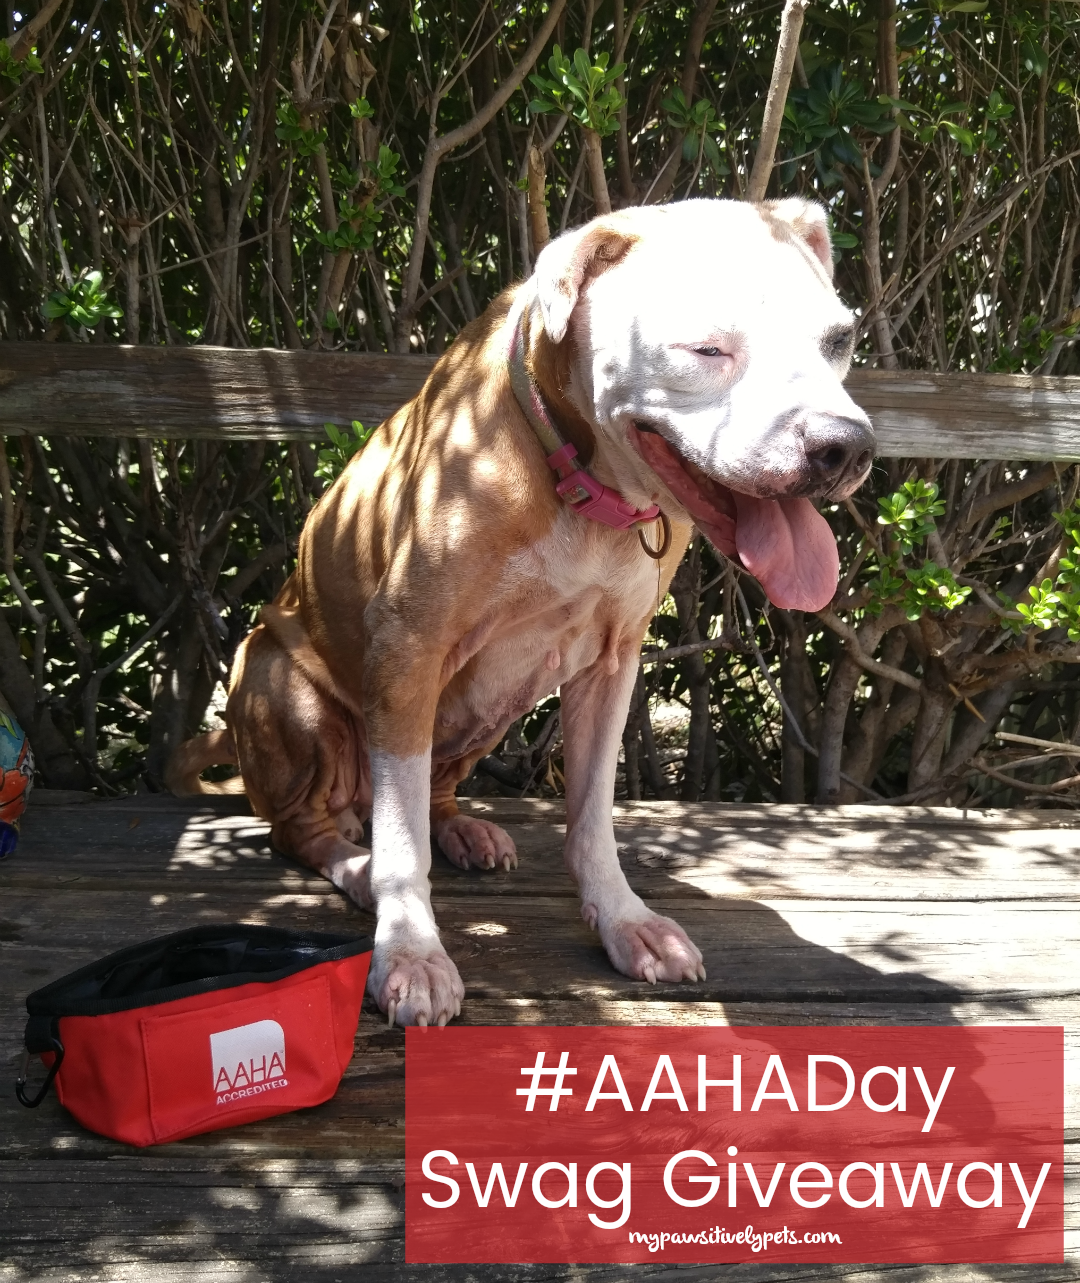 how to become aaha accredited